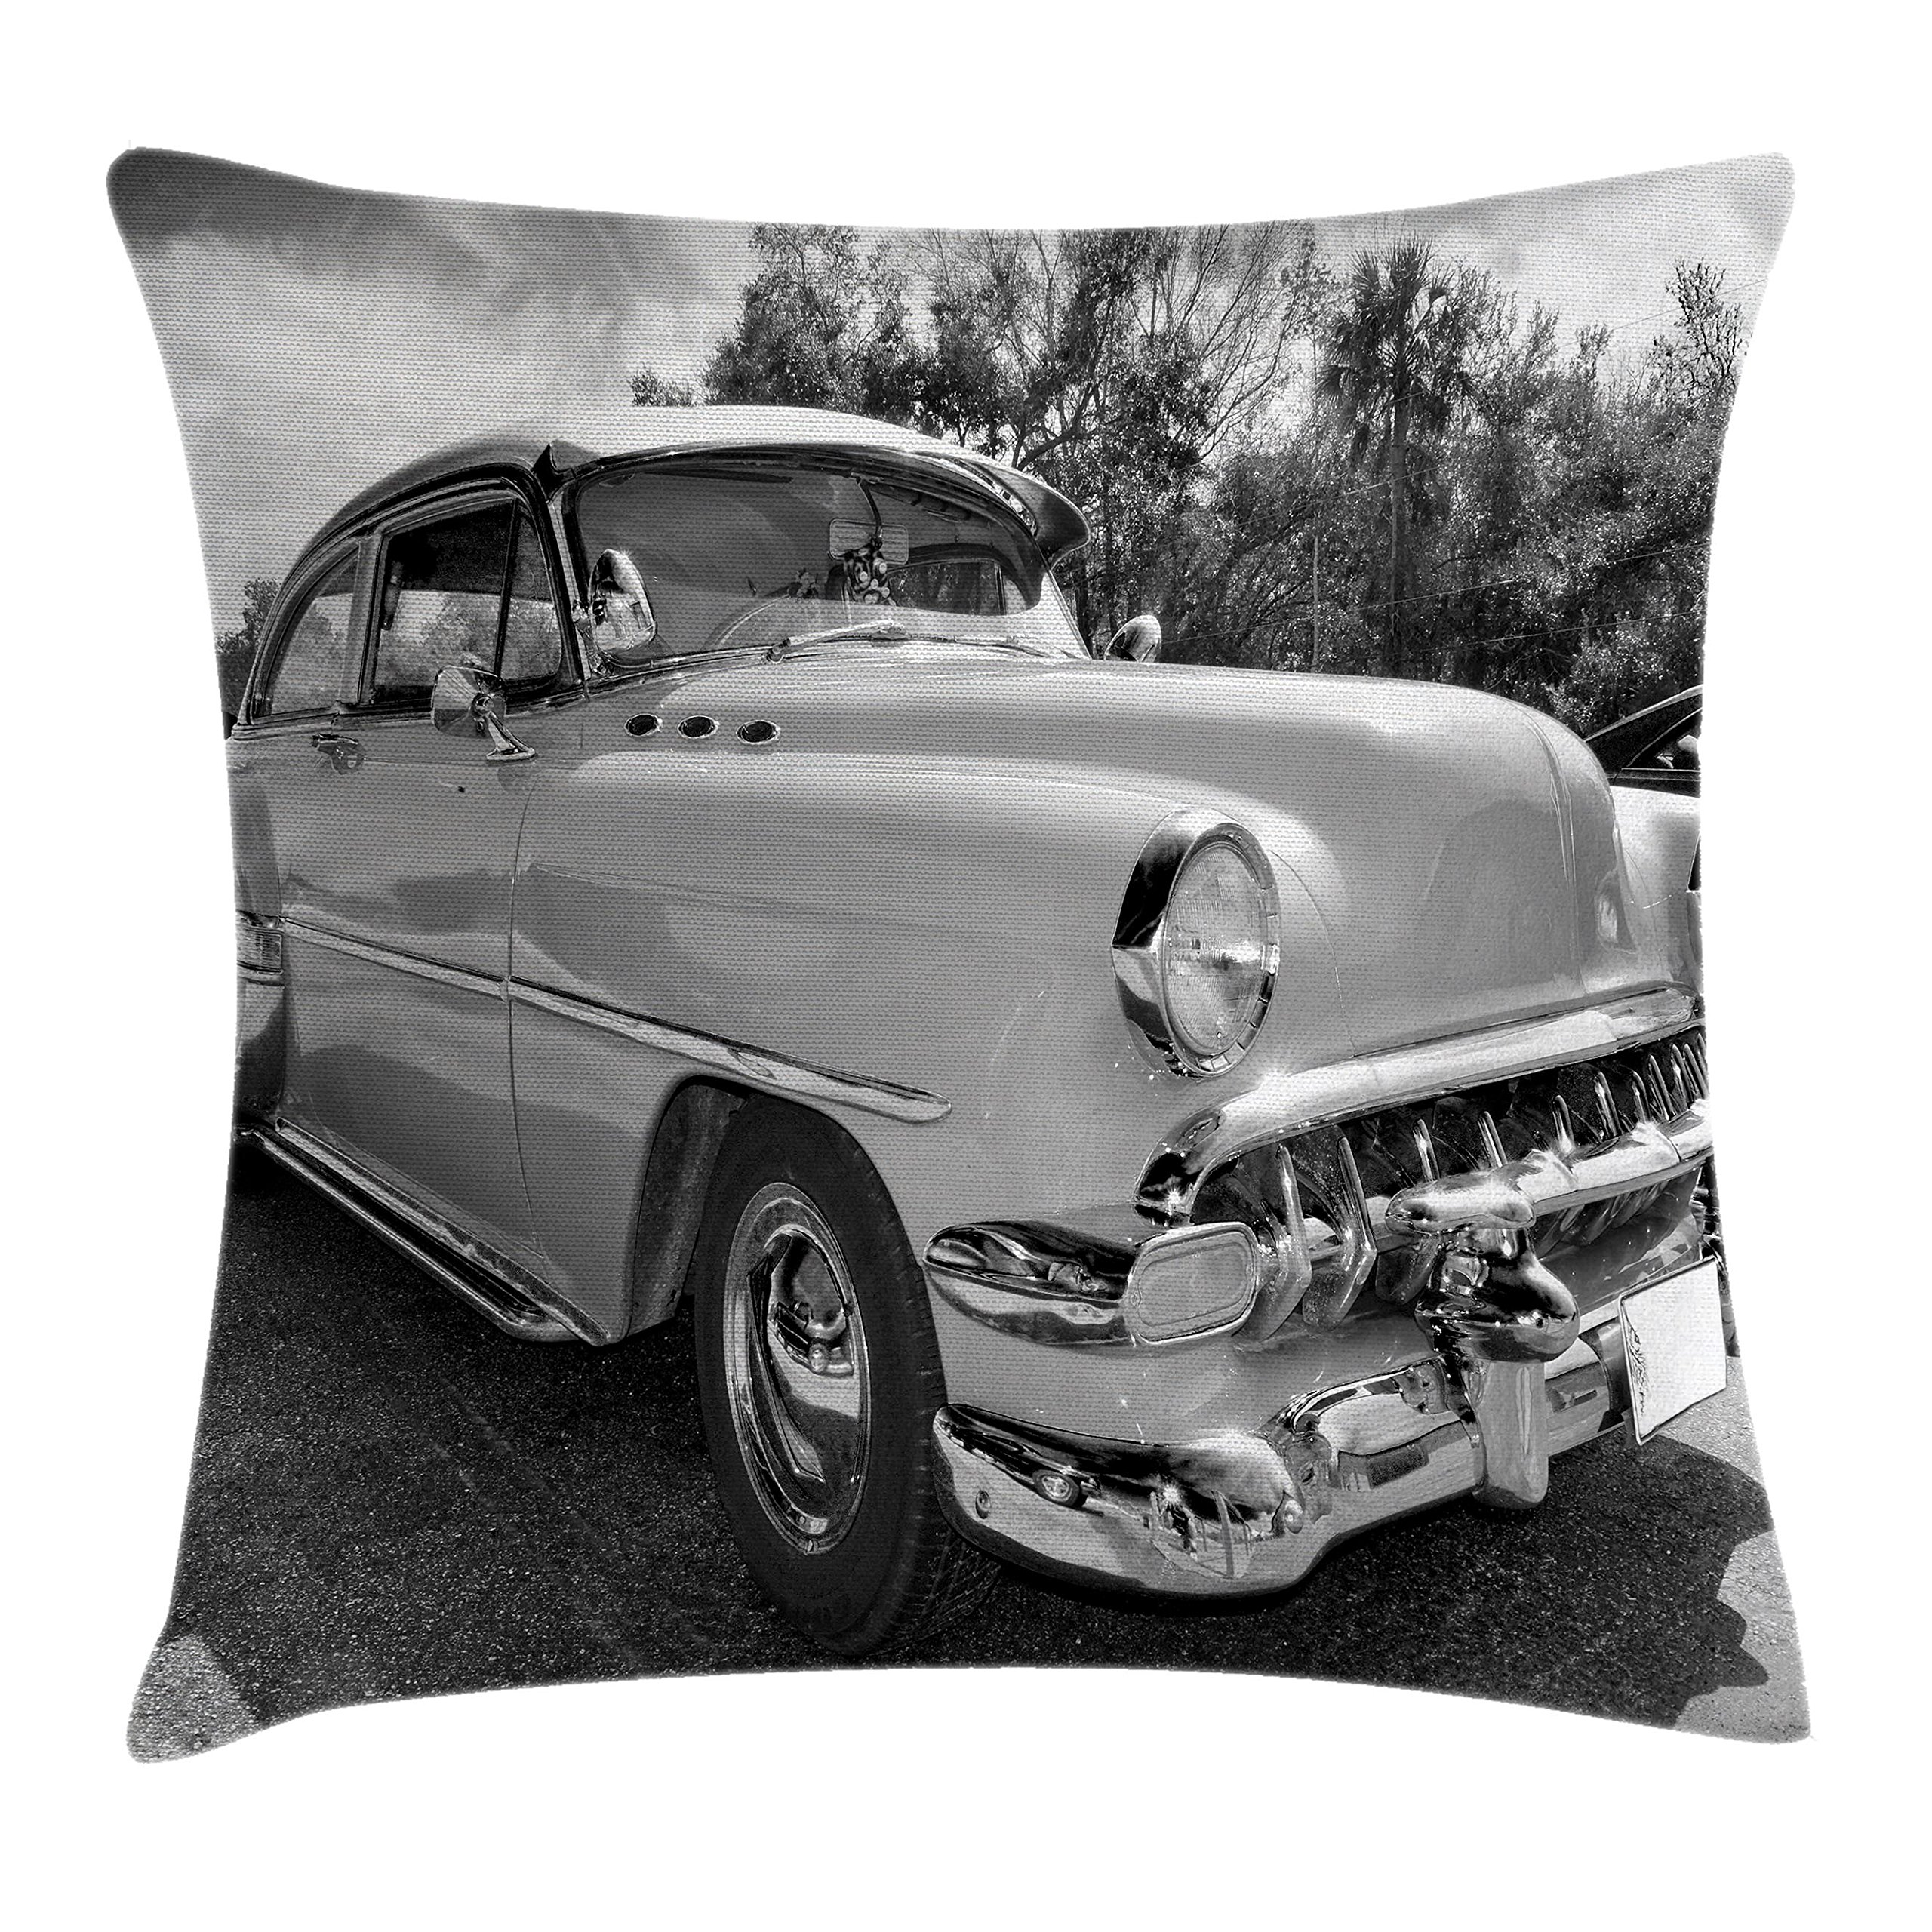 Ambesonne Vintage Throw Pillow Cushion Cover, 50s 60s Retro Classic Pin up Style Cars in Hollywood Movies Image Artwork, Decorative Square Accent Pillow Case, 16 X 16 inches, Black White and Gray